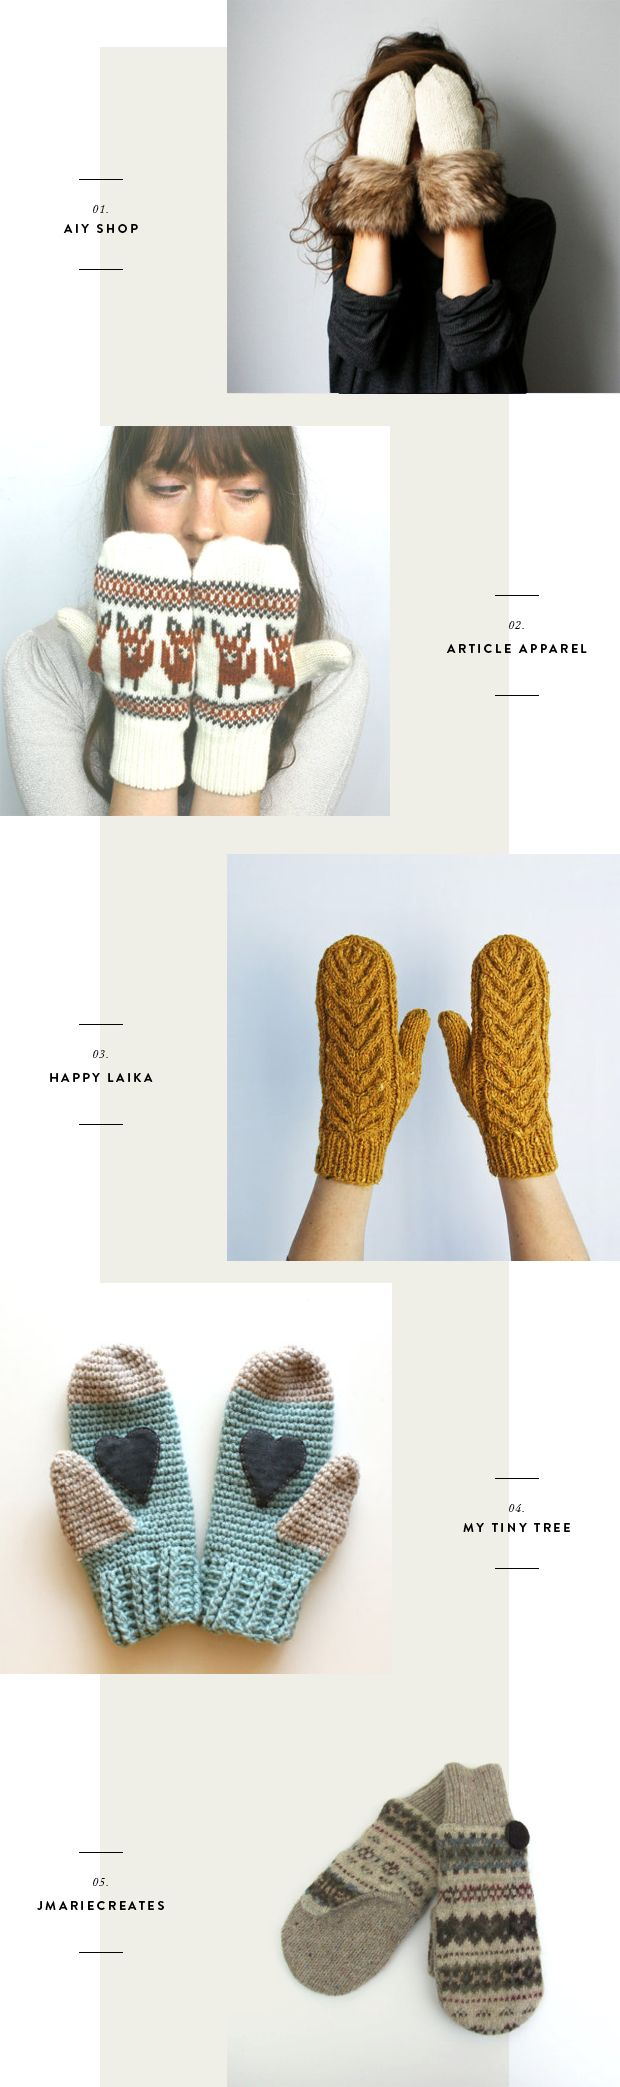 etsy, cold weather accessories